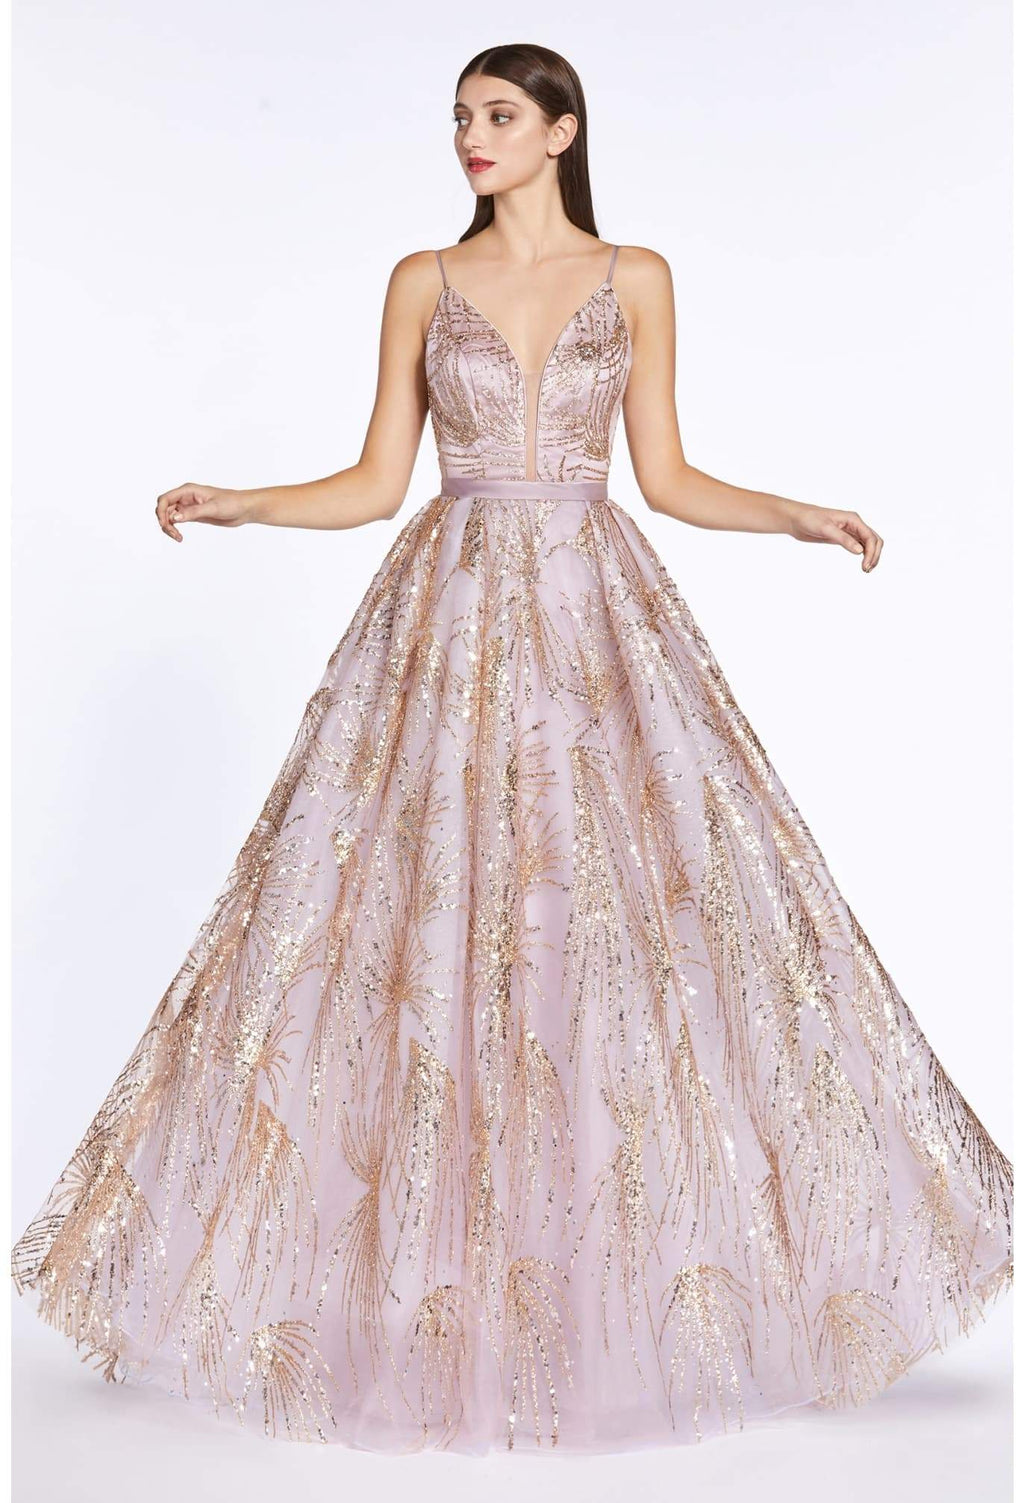 Ball gown dress with glitter print details and plunge neckline - KC Haute Couture Wedding Dress